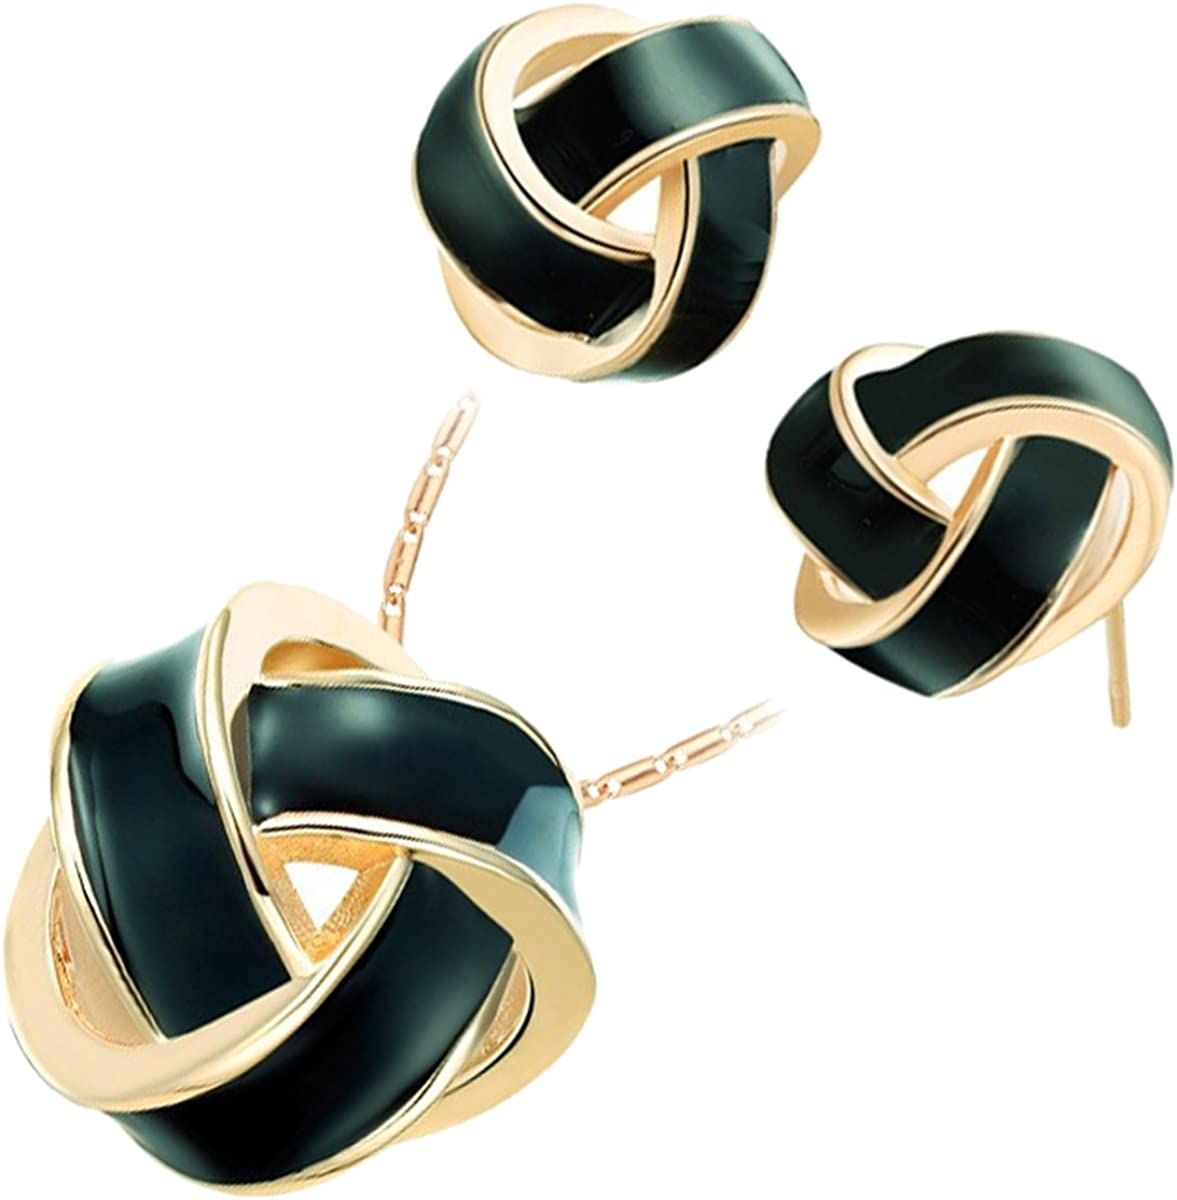 GWG Jewellery Women Set Gift Jewellery Set 18K Gold Plated Pendant Necklace and Earrings Knot with Coloured Stripe Unusual Design for Women